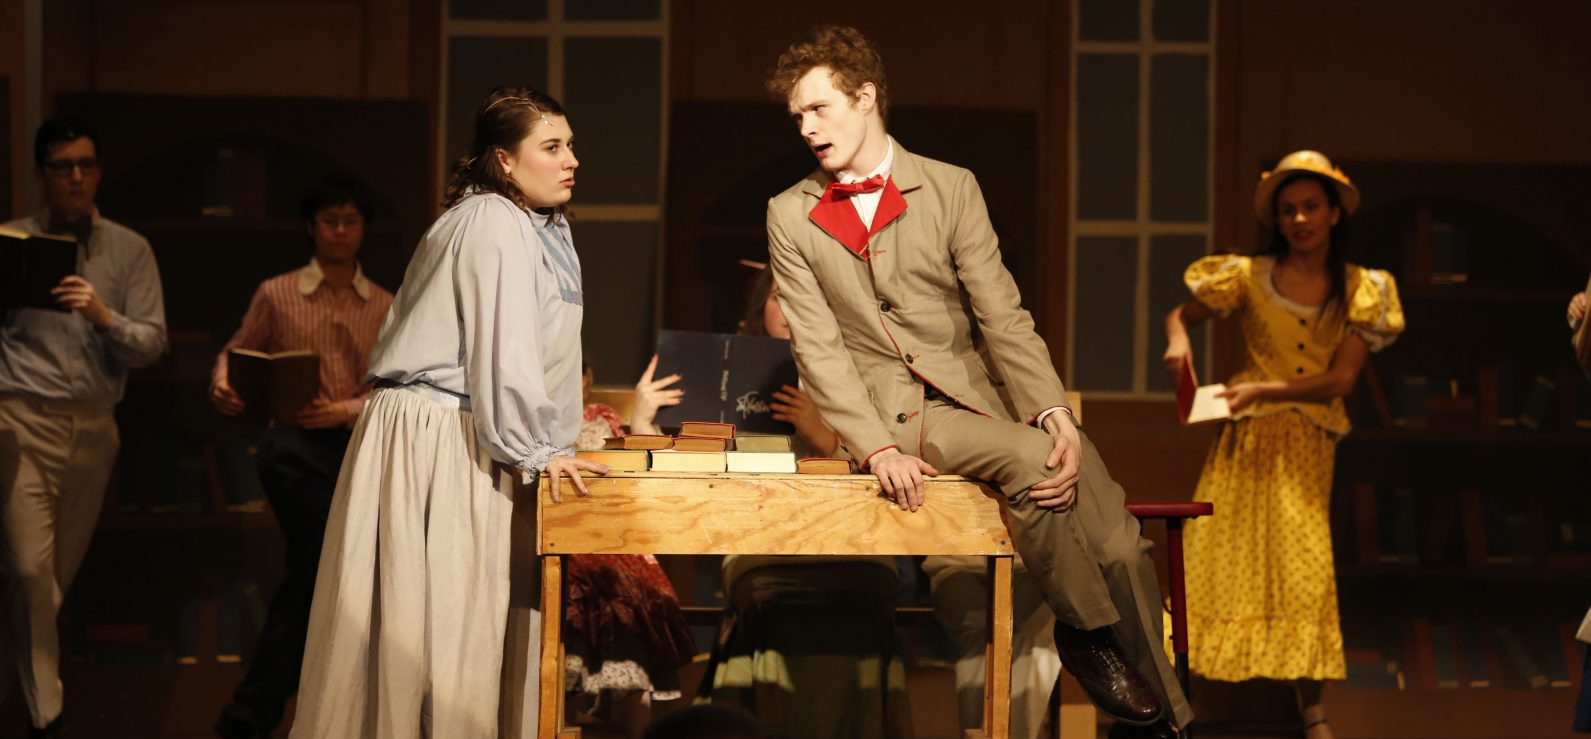 Two student actors perform their lines on stage